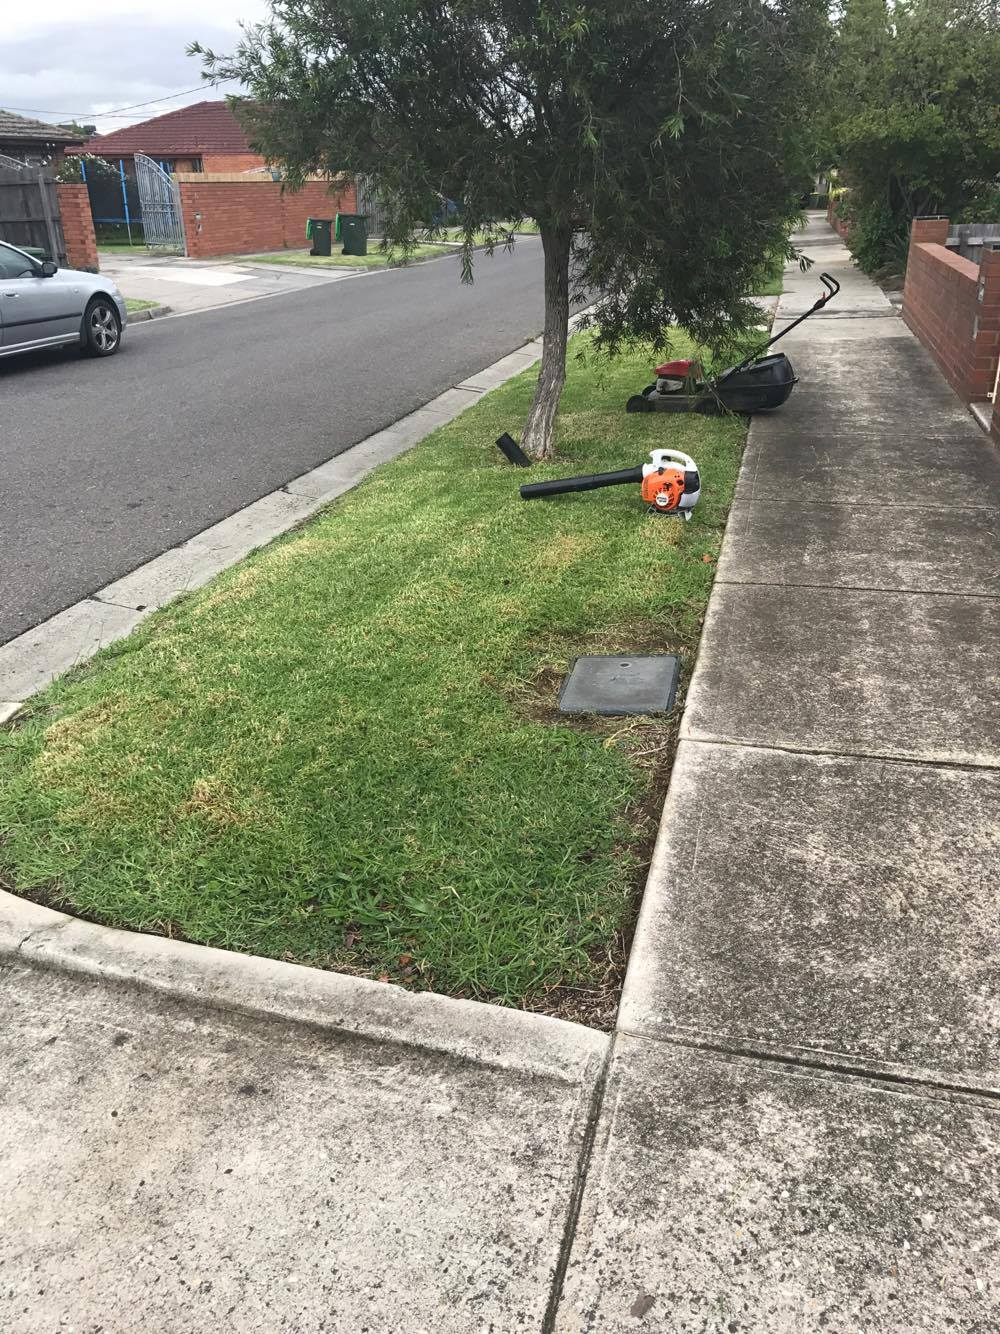 Mow now lawn mowing services from 25 free quote today for Gardening tools melbourne